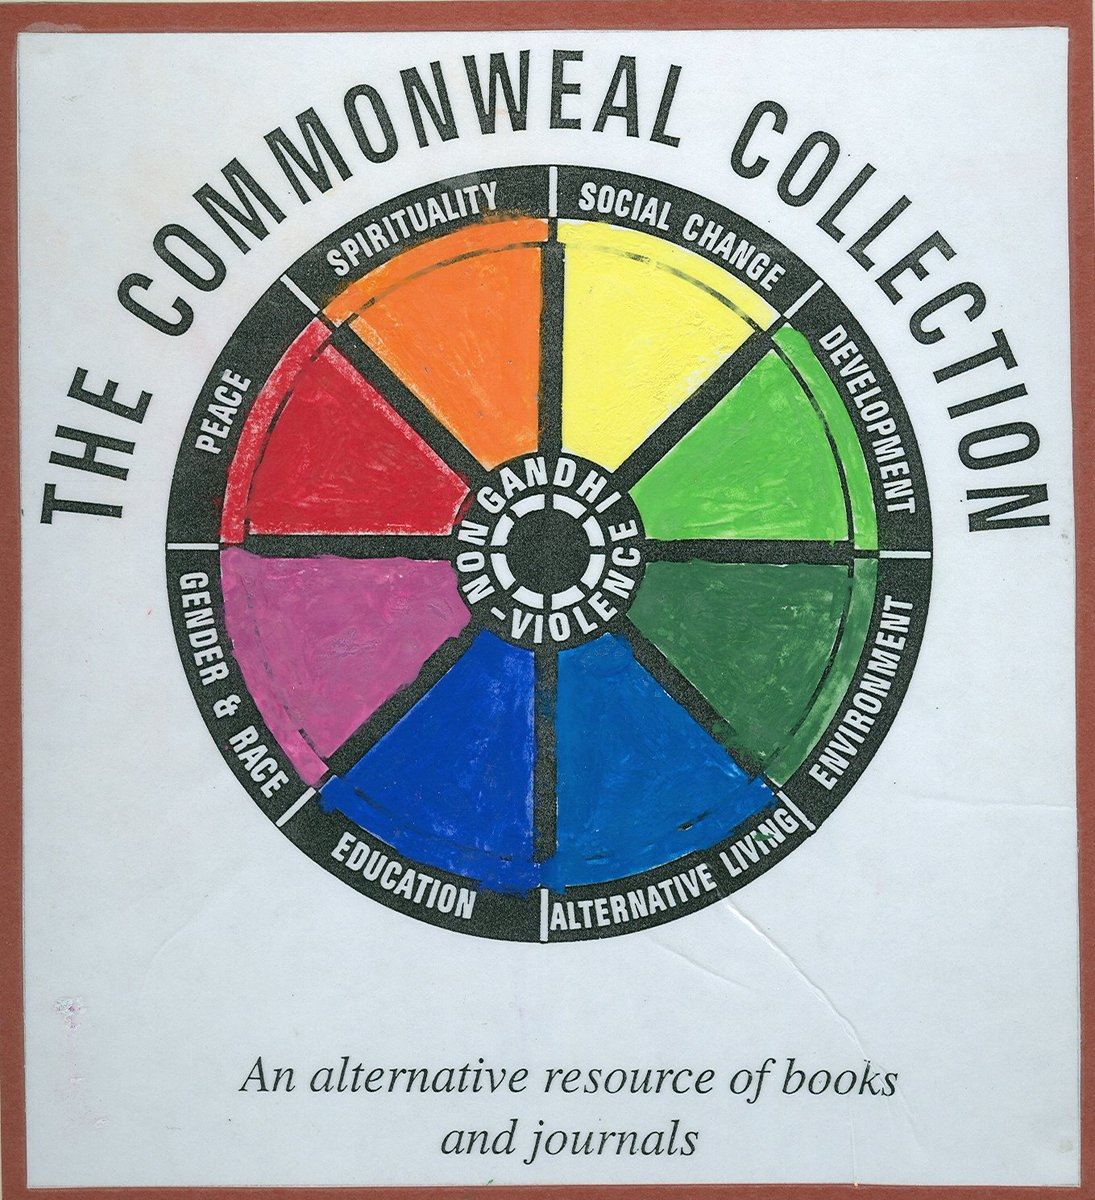 Thanks to @100objectsbrad and @LibraryUoB! There's more information about the Collection, our history, and @CommonwealUK's online work at https://t.co/INnMsvECdH  #InternationalDayOfPeace